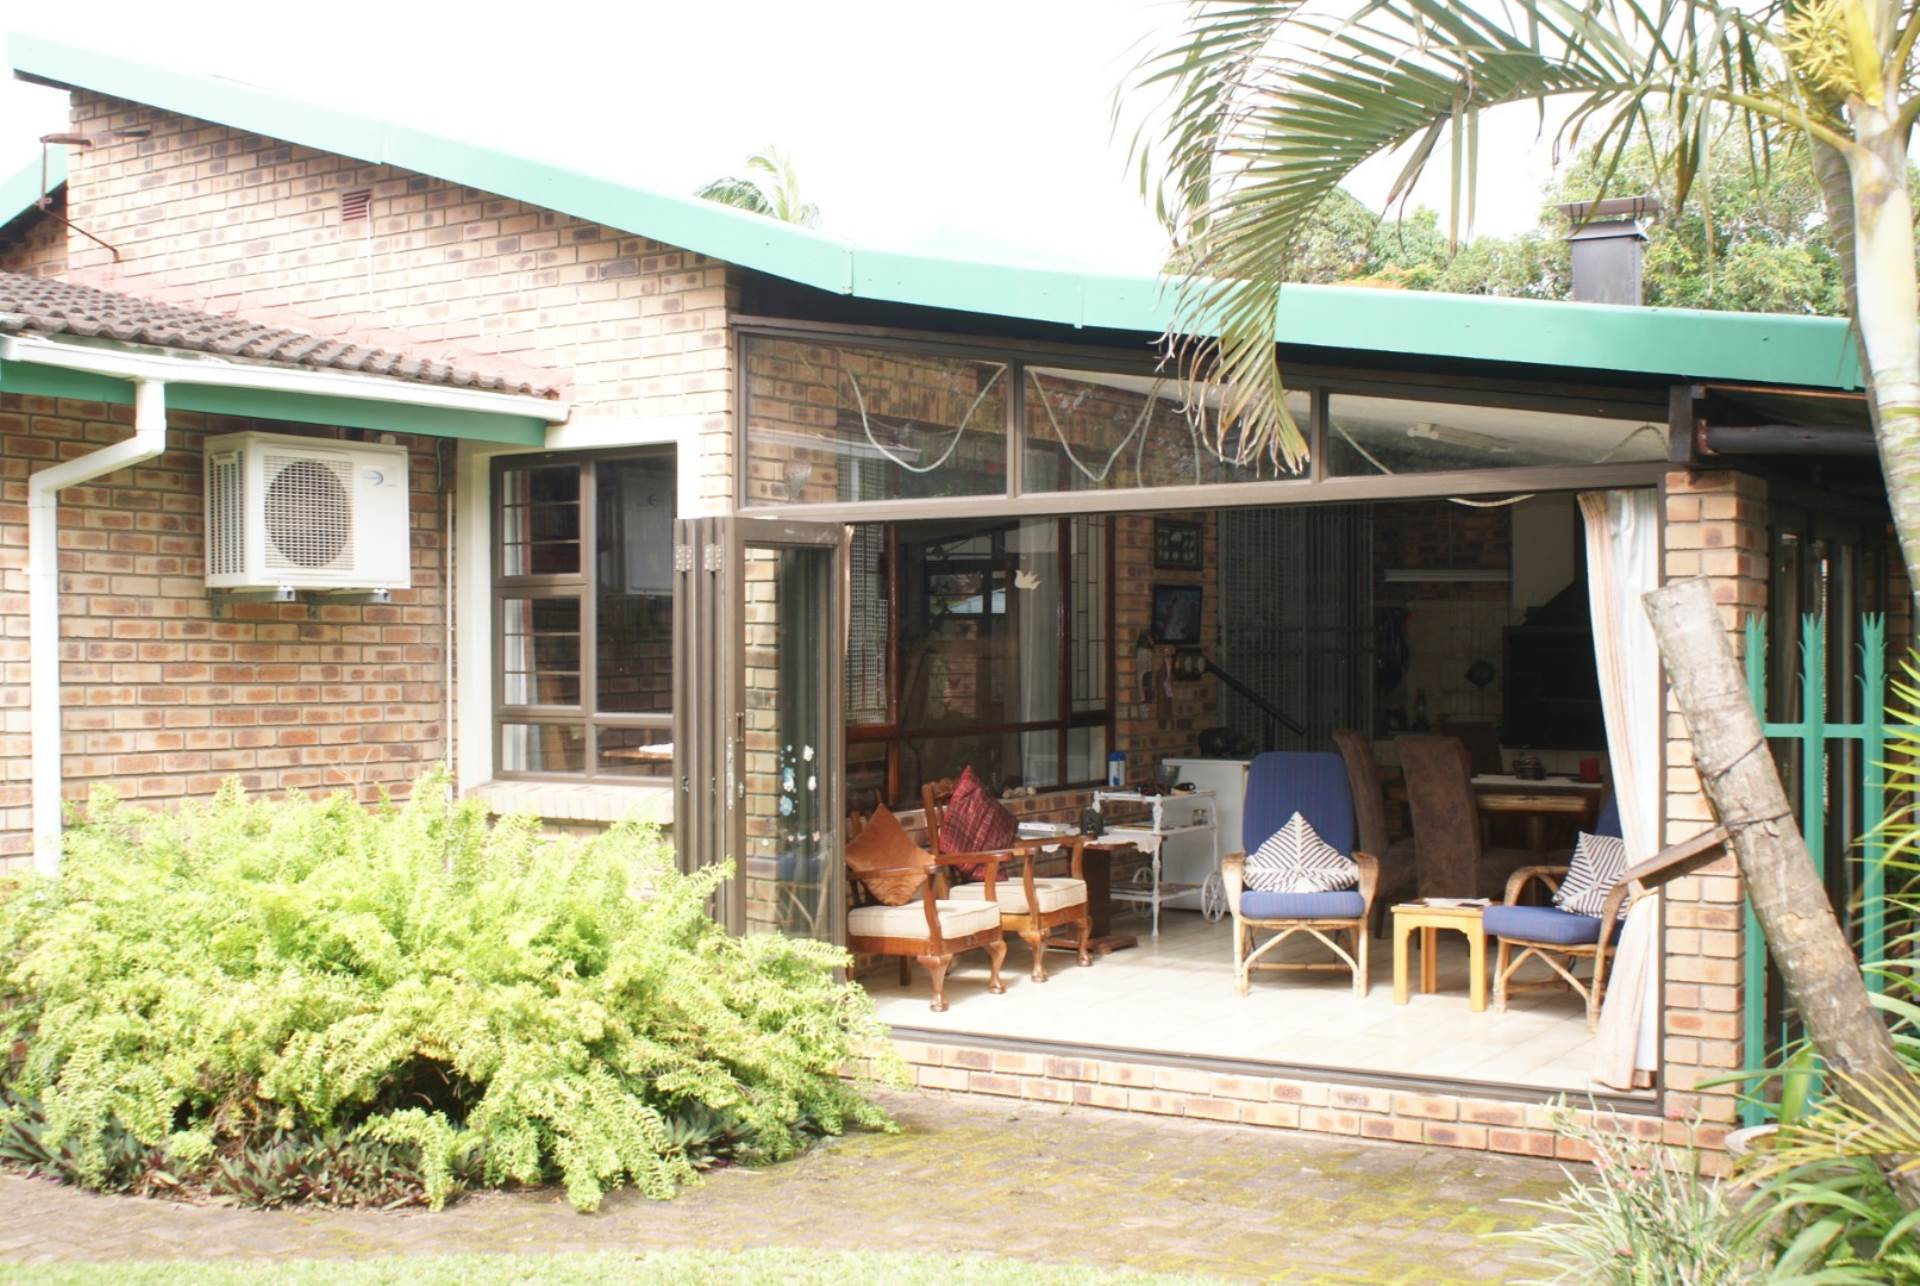 5 BedroomTownhouse For Sale In St Lucia